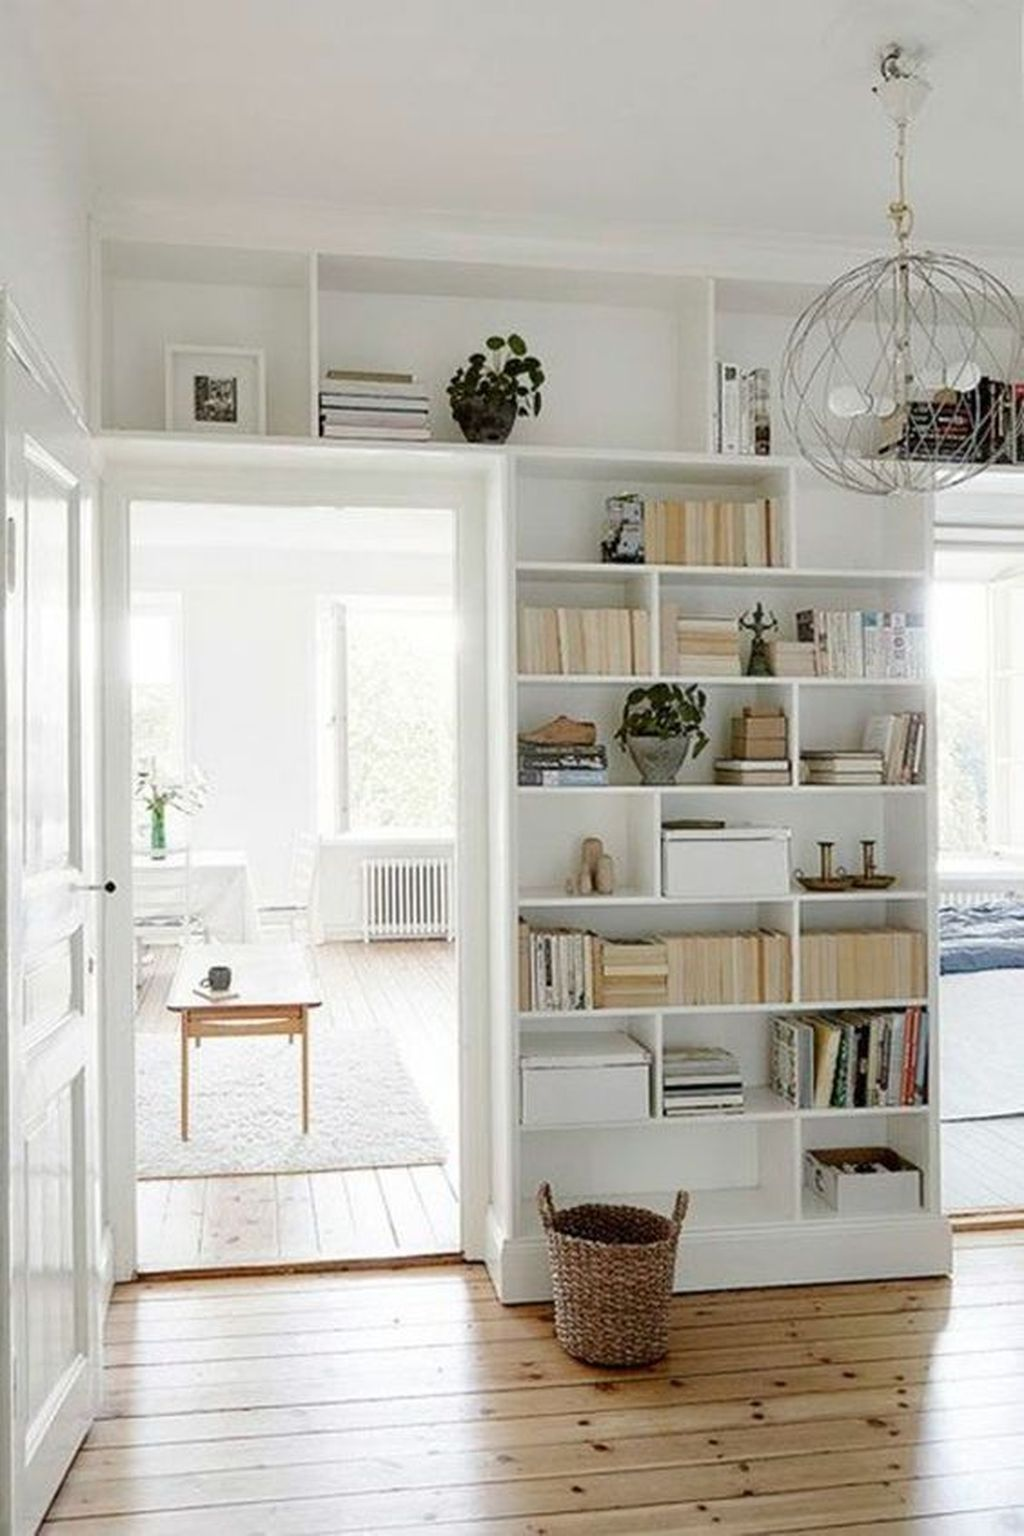 Library Room Ideas For Small Spaces: 50 Pretty Diy Bookshelf Decoration Ideas That You Need To